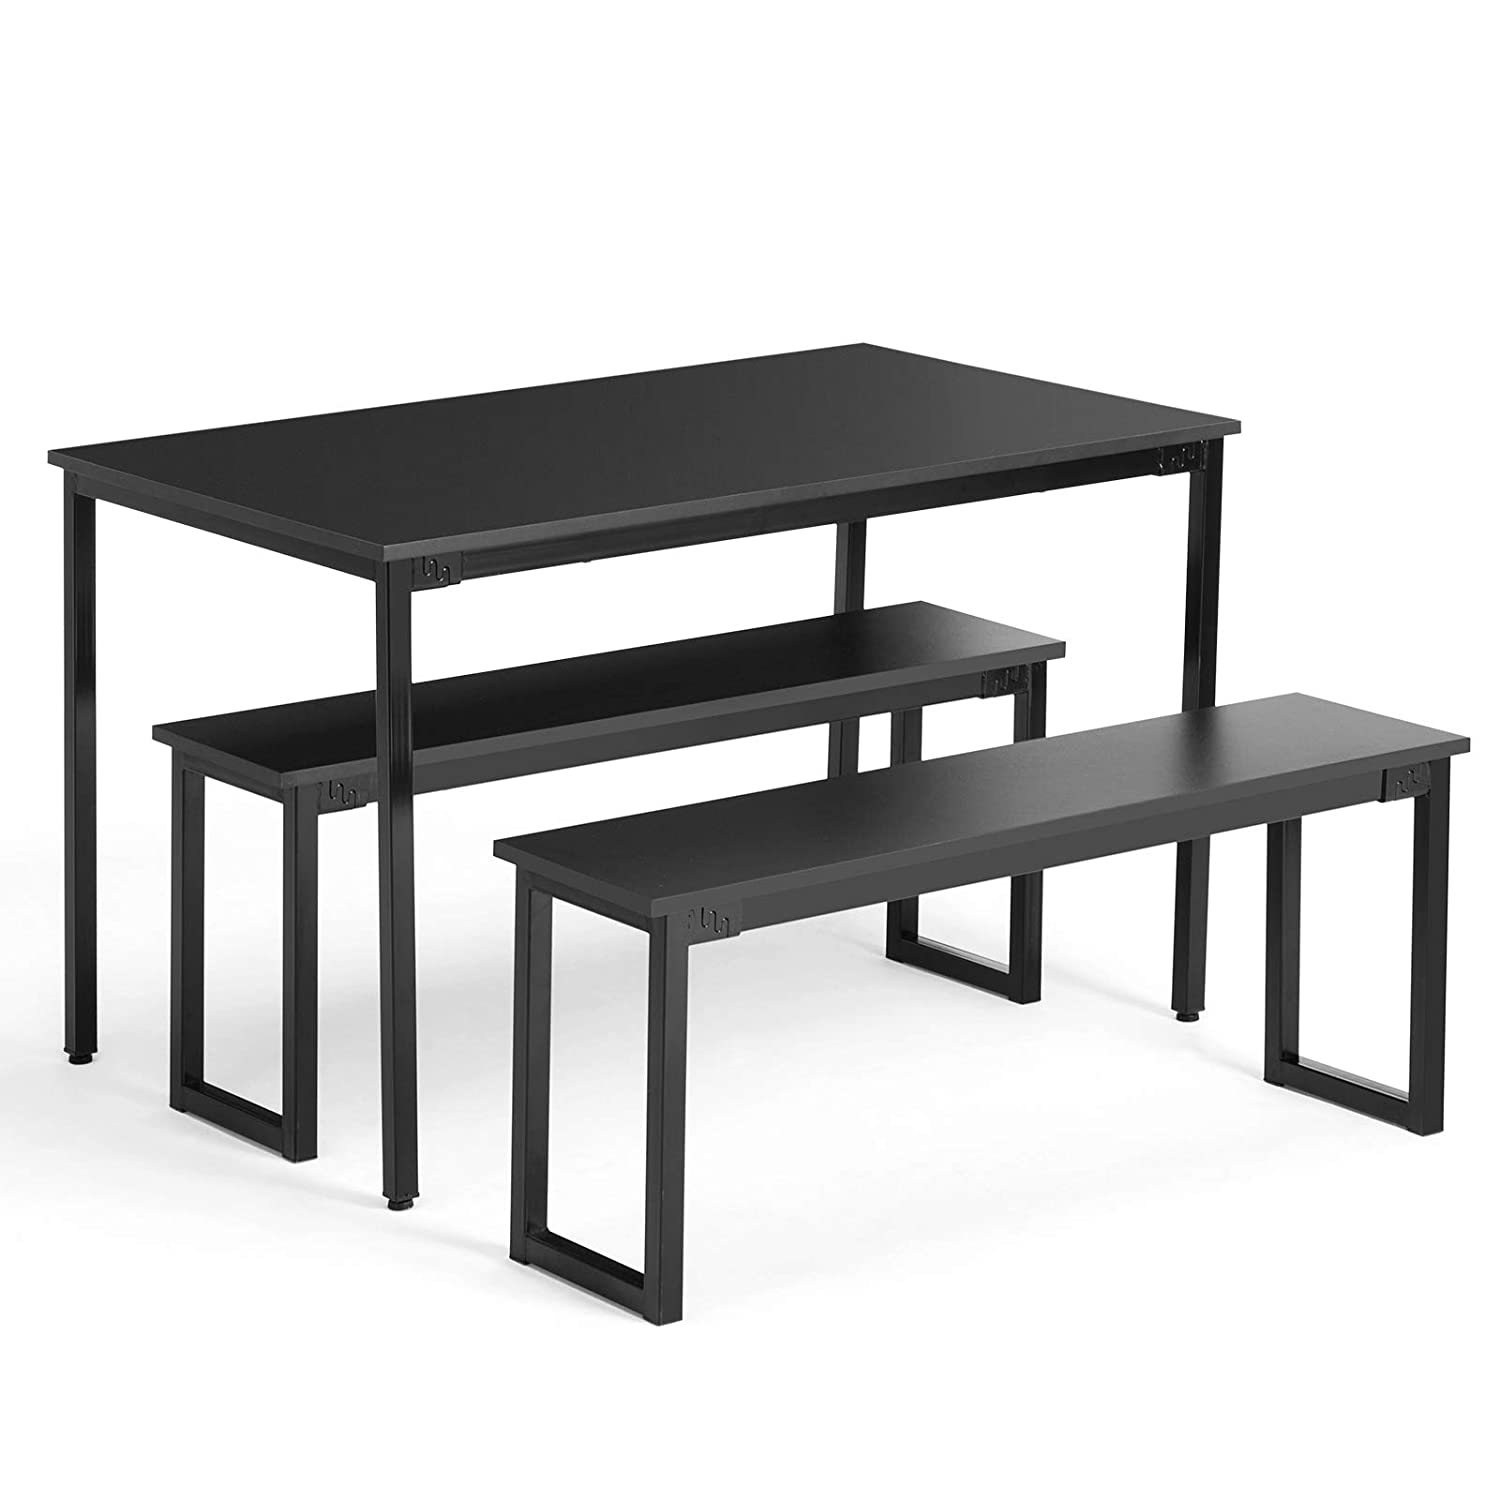 Artist Hand Dining Table, 3 Piece Kittchen Table Set with 2 Benches,Dining Room Table Furniture with Steel Frame(Black)